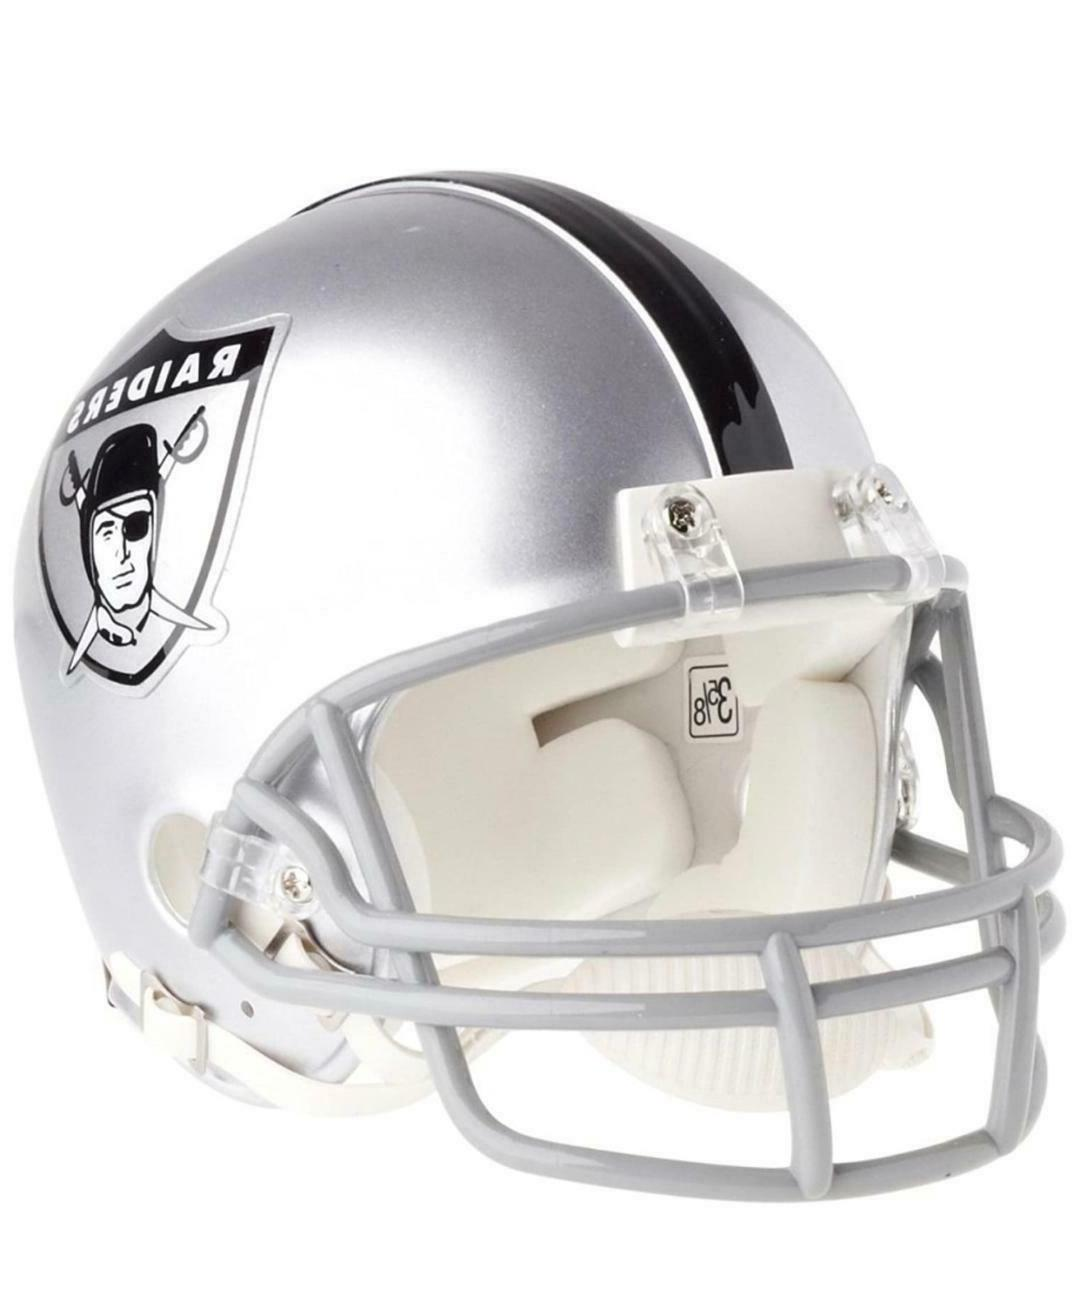 oakland raiders nfl mini helmet